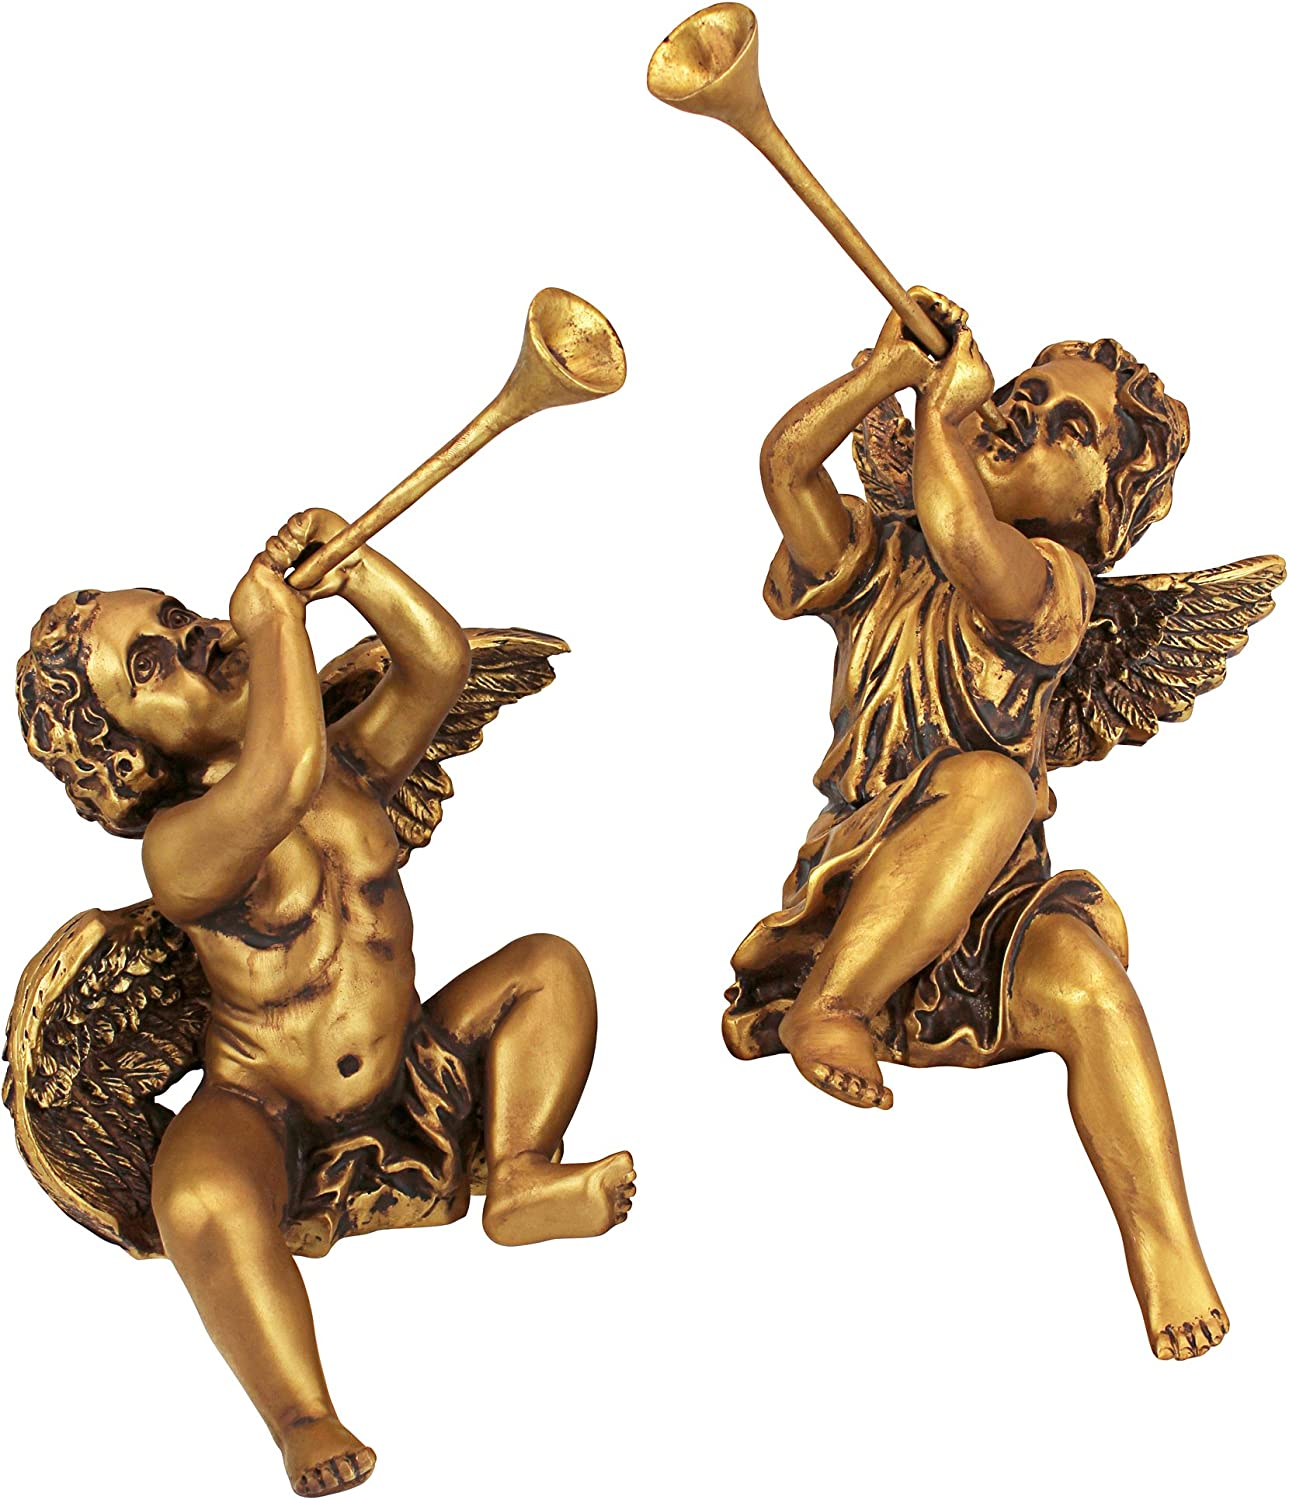 Design Toscano Christmas Decorations - Trumpeting Angel Boy and Girl of St. Peters Square - Holiday Angel Statue